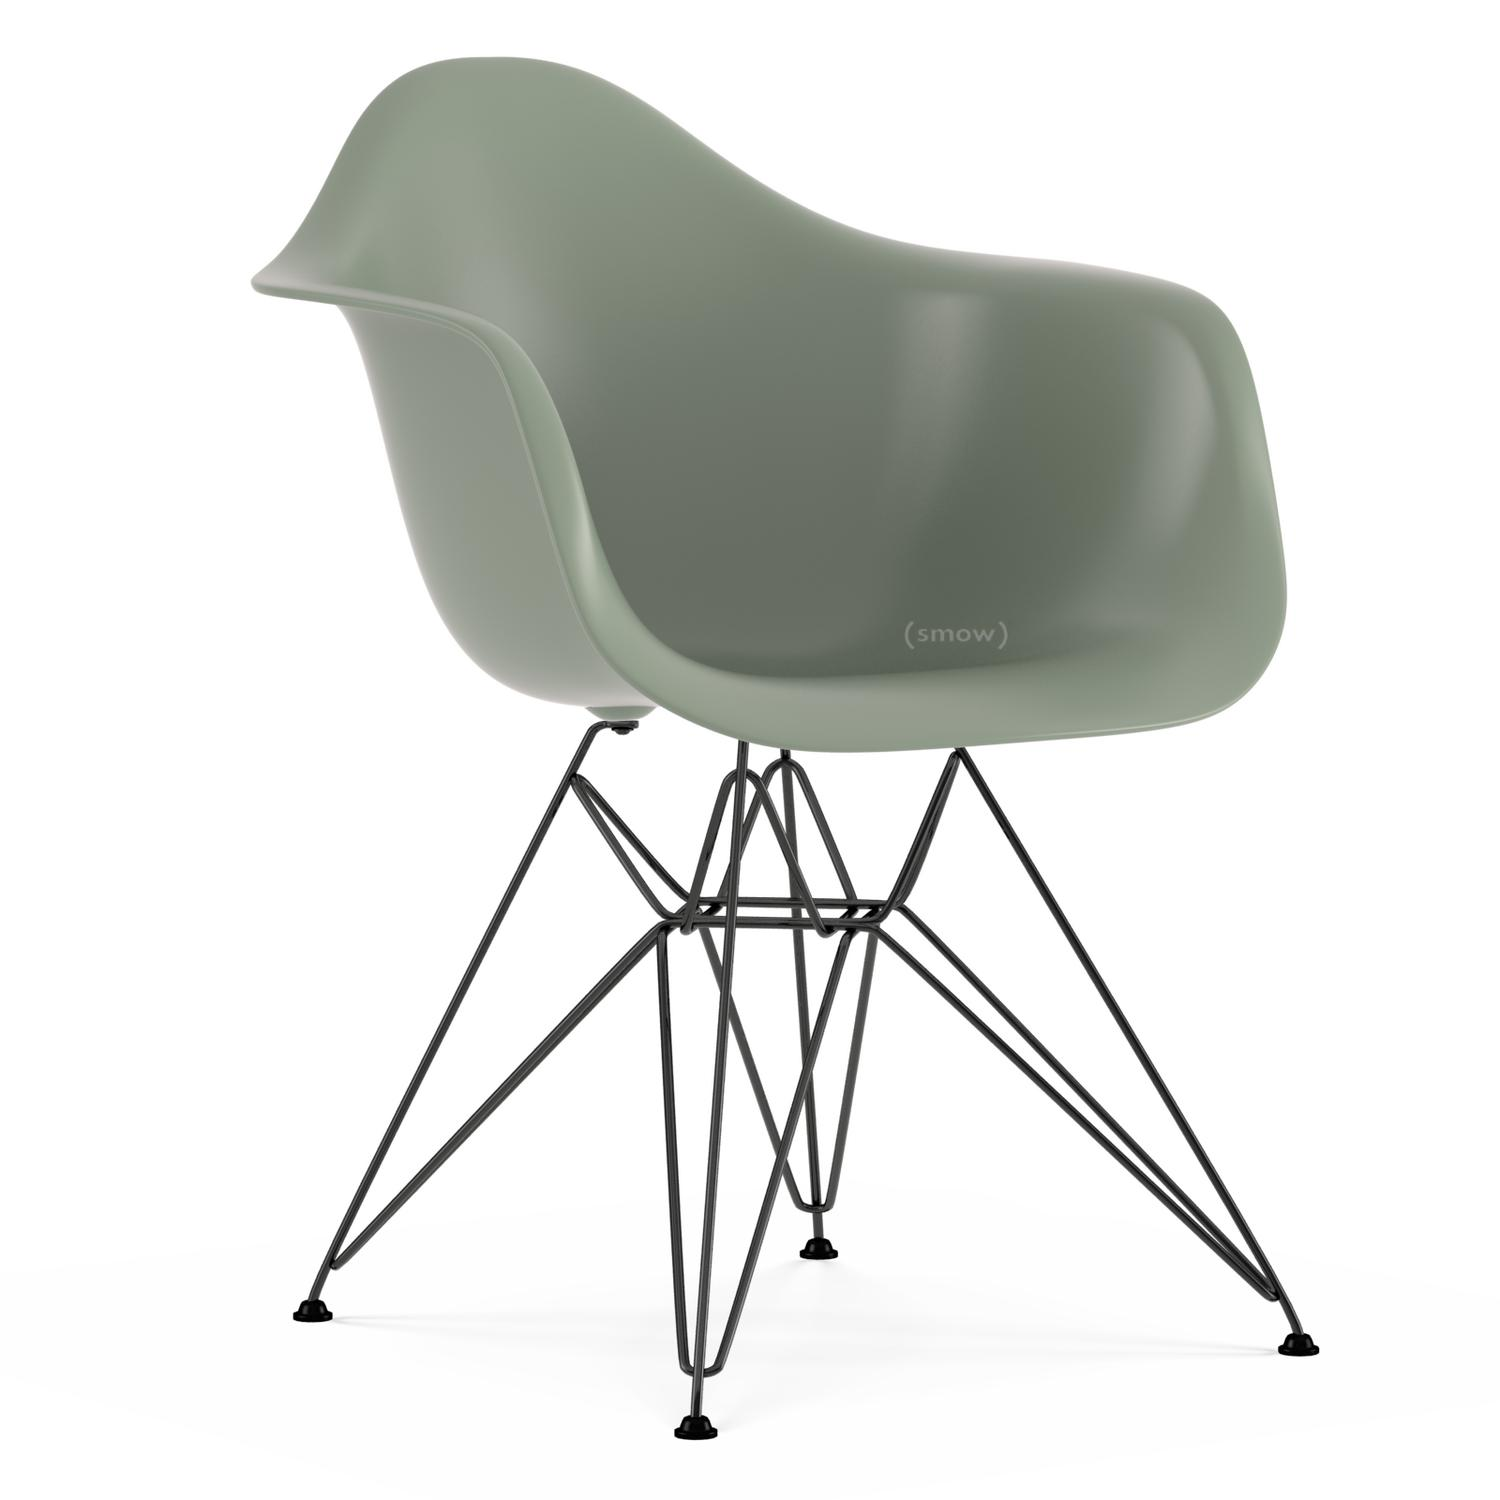 vitra eames plastic armchair dar moss grey new without upholstery. Black Bedroom Furniture Sets. Home Design Ideas